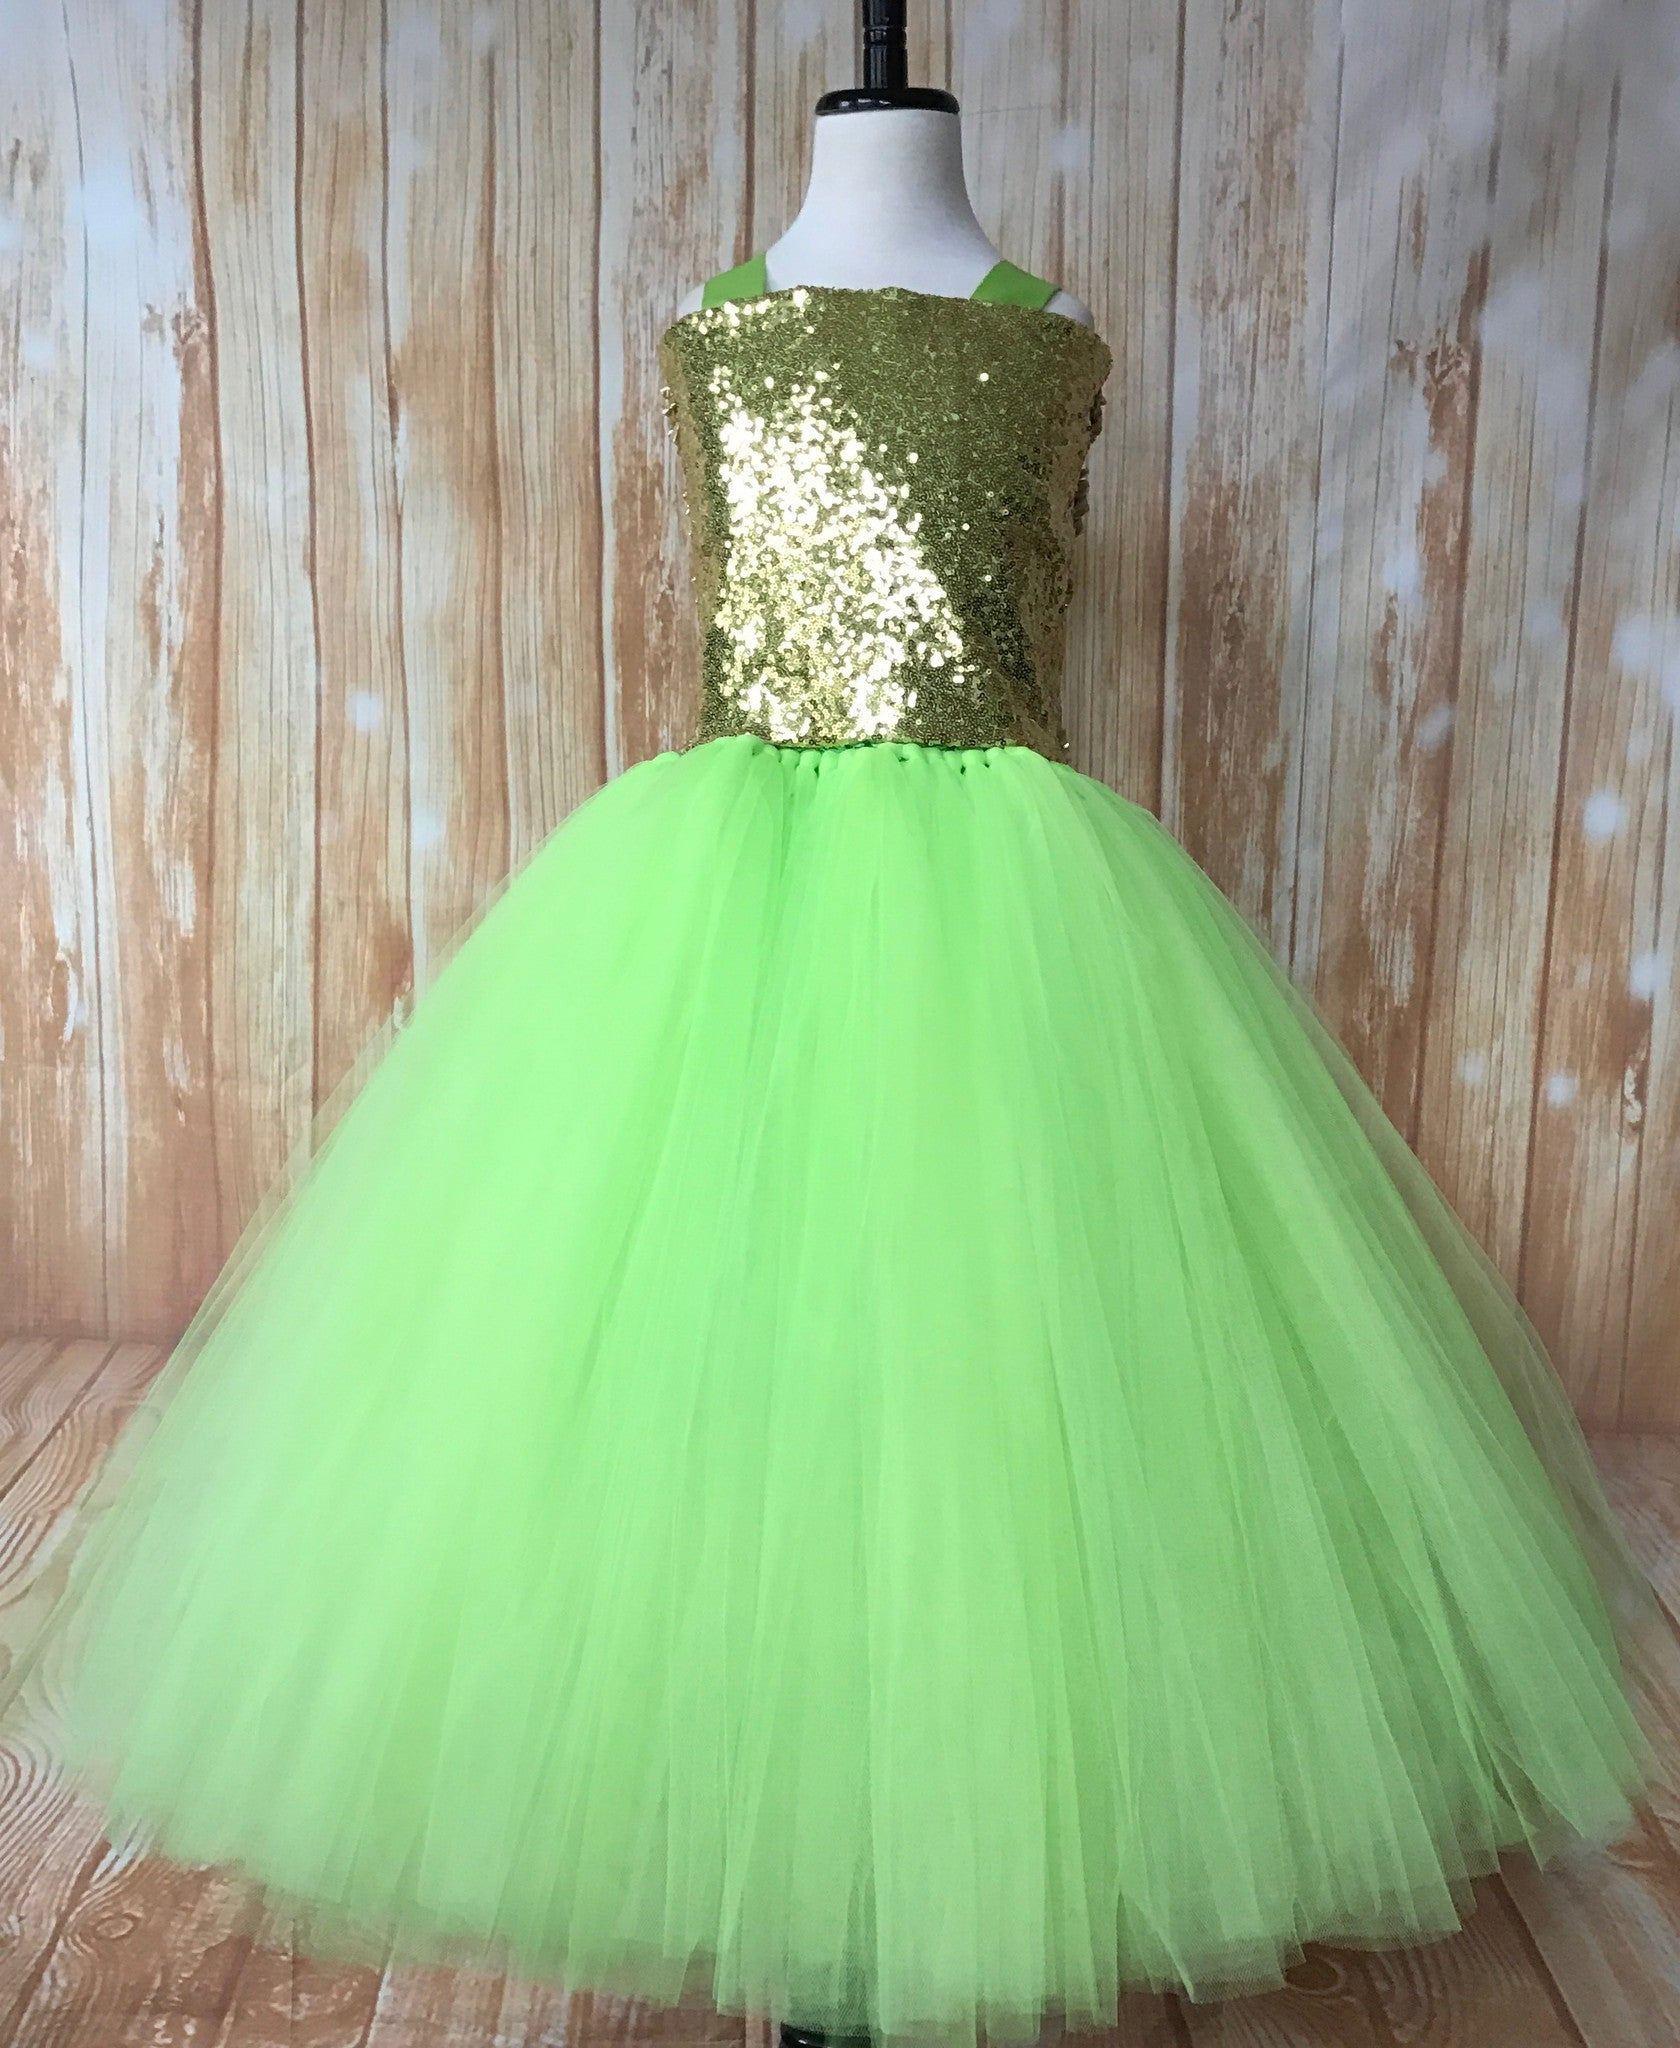 Green Tutu, Girls Green & Gold Tutu Dress, Apple Green Tutu, Green Pageant Tutu - Little Ladybug Tutus